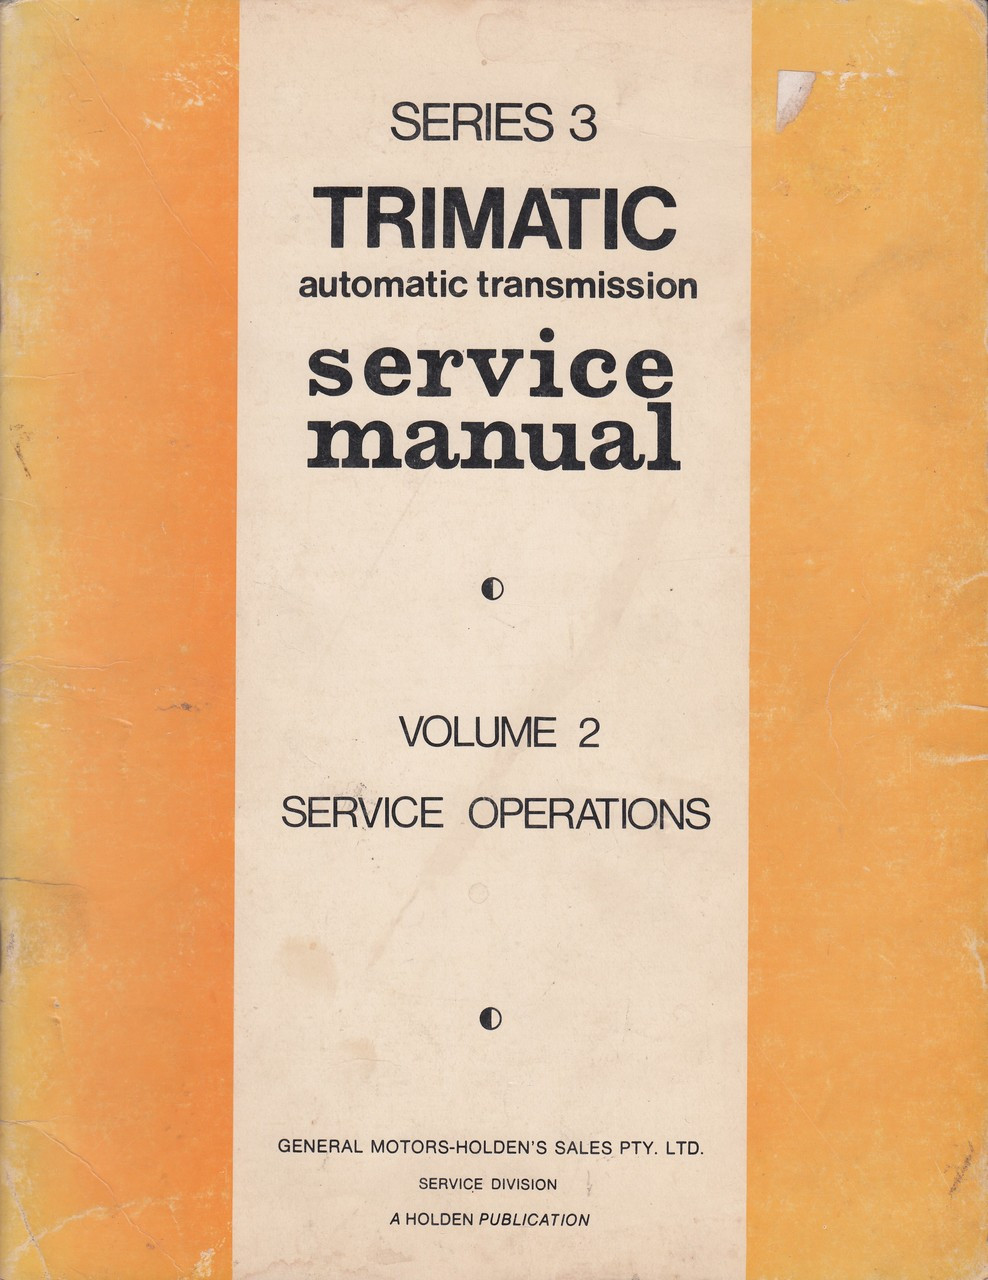 holden series 3 trimatic automatic transmission service manual vol 2 service operations [ 988 x 1280 Pixel ]